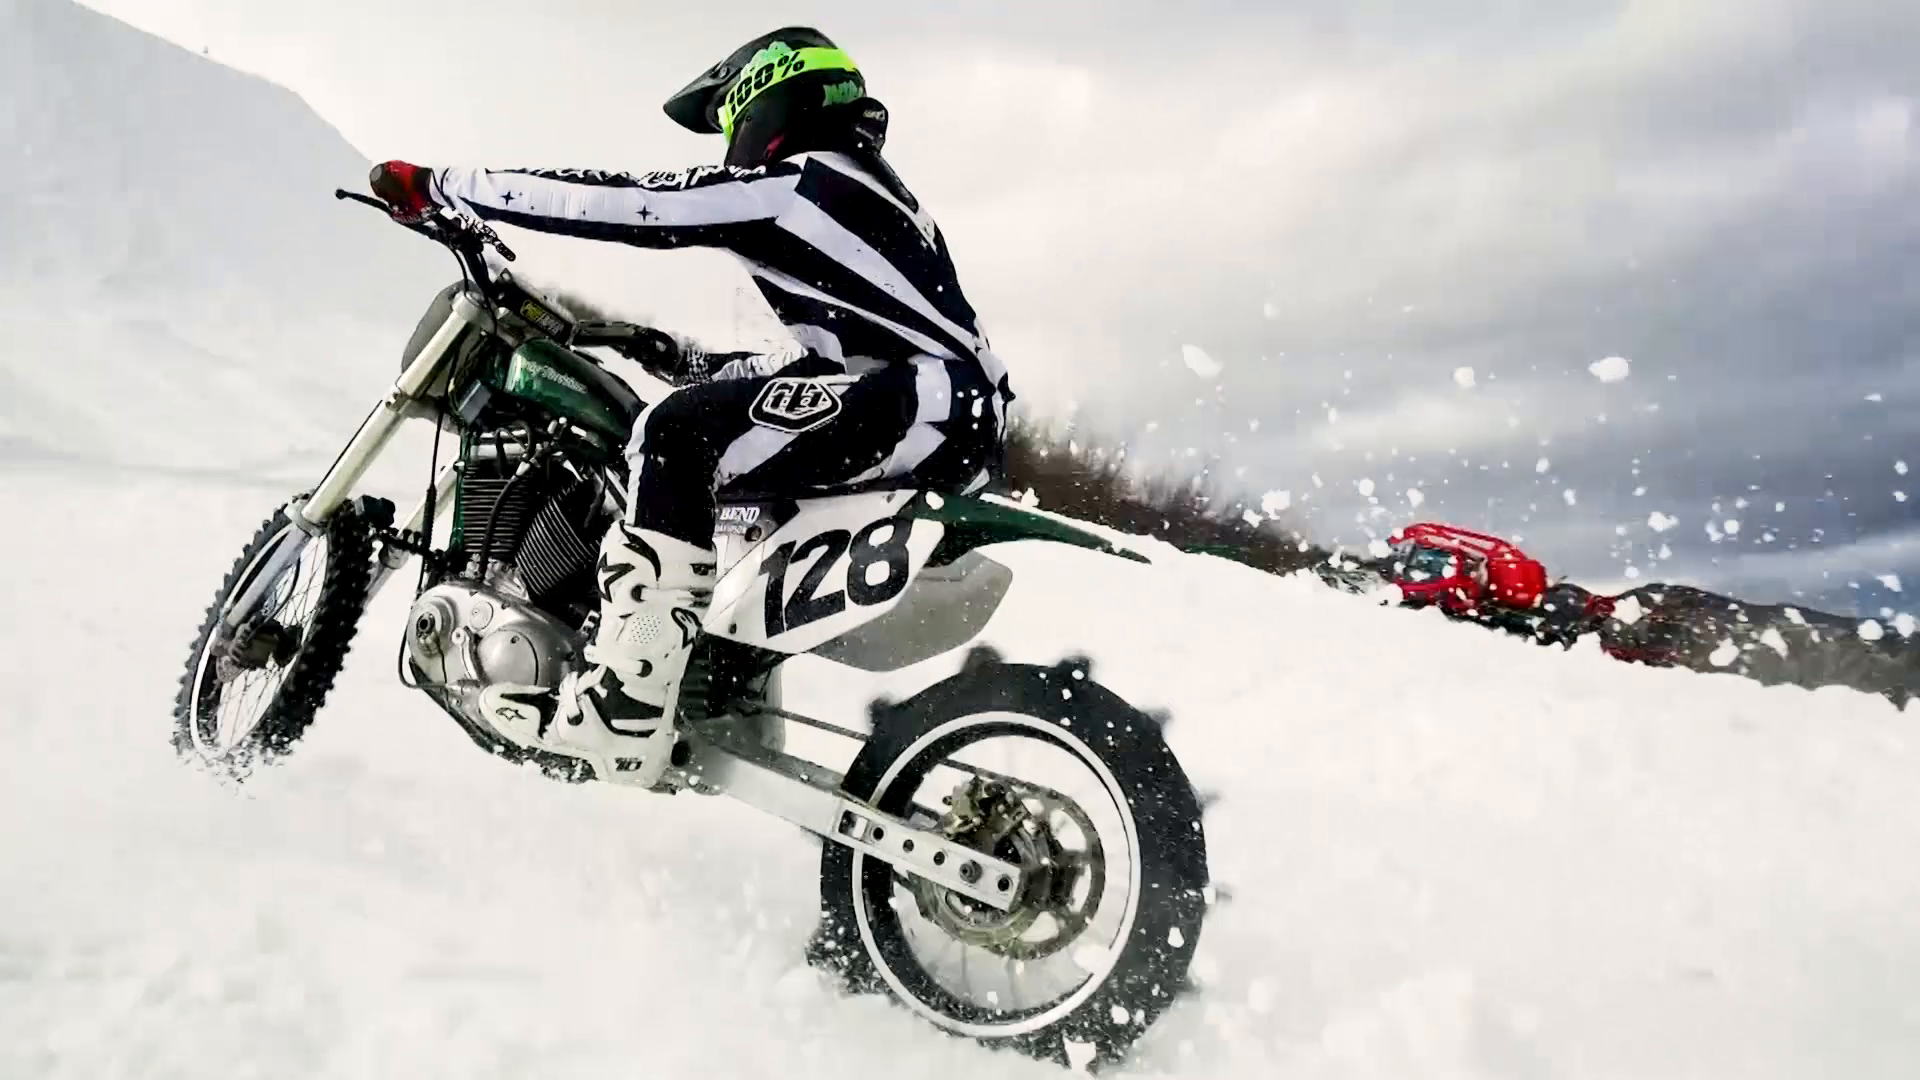 Thumbnail for The Snow Hill Climb: Creating a new event at the Winter X Games